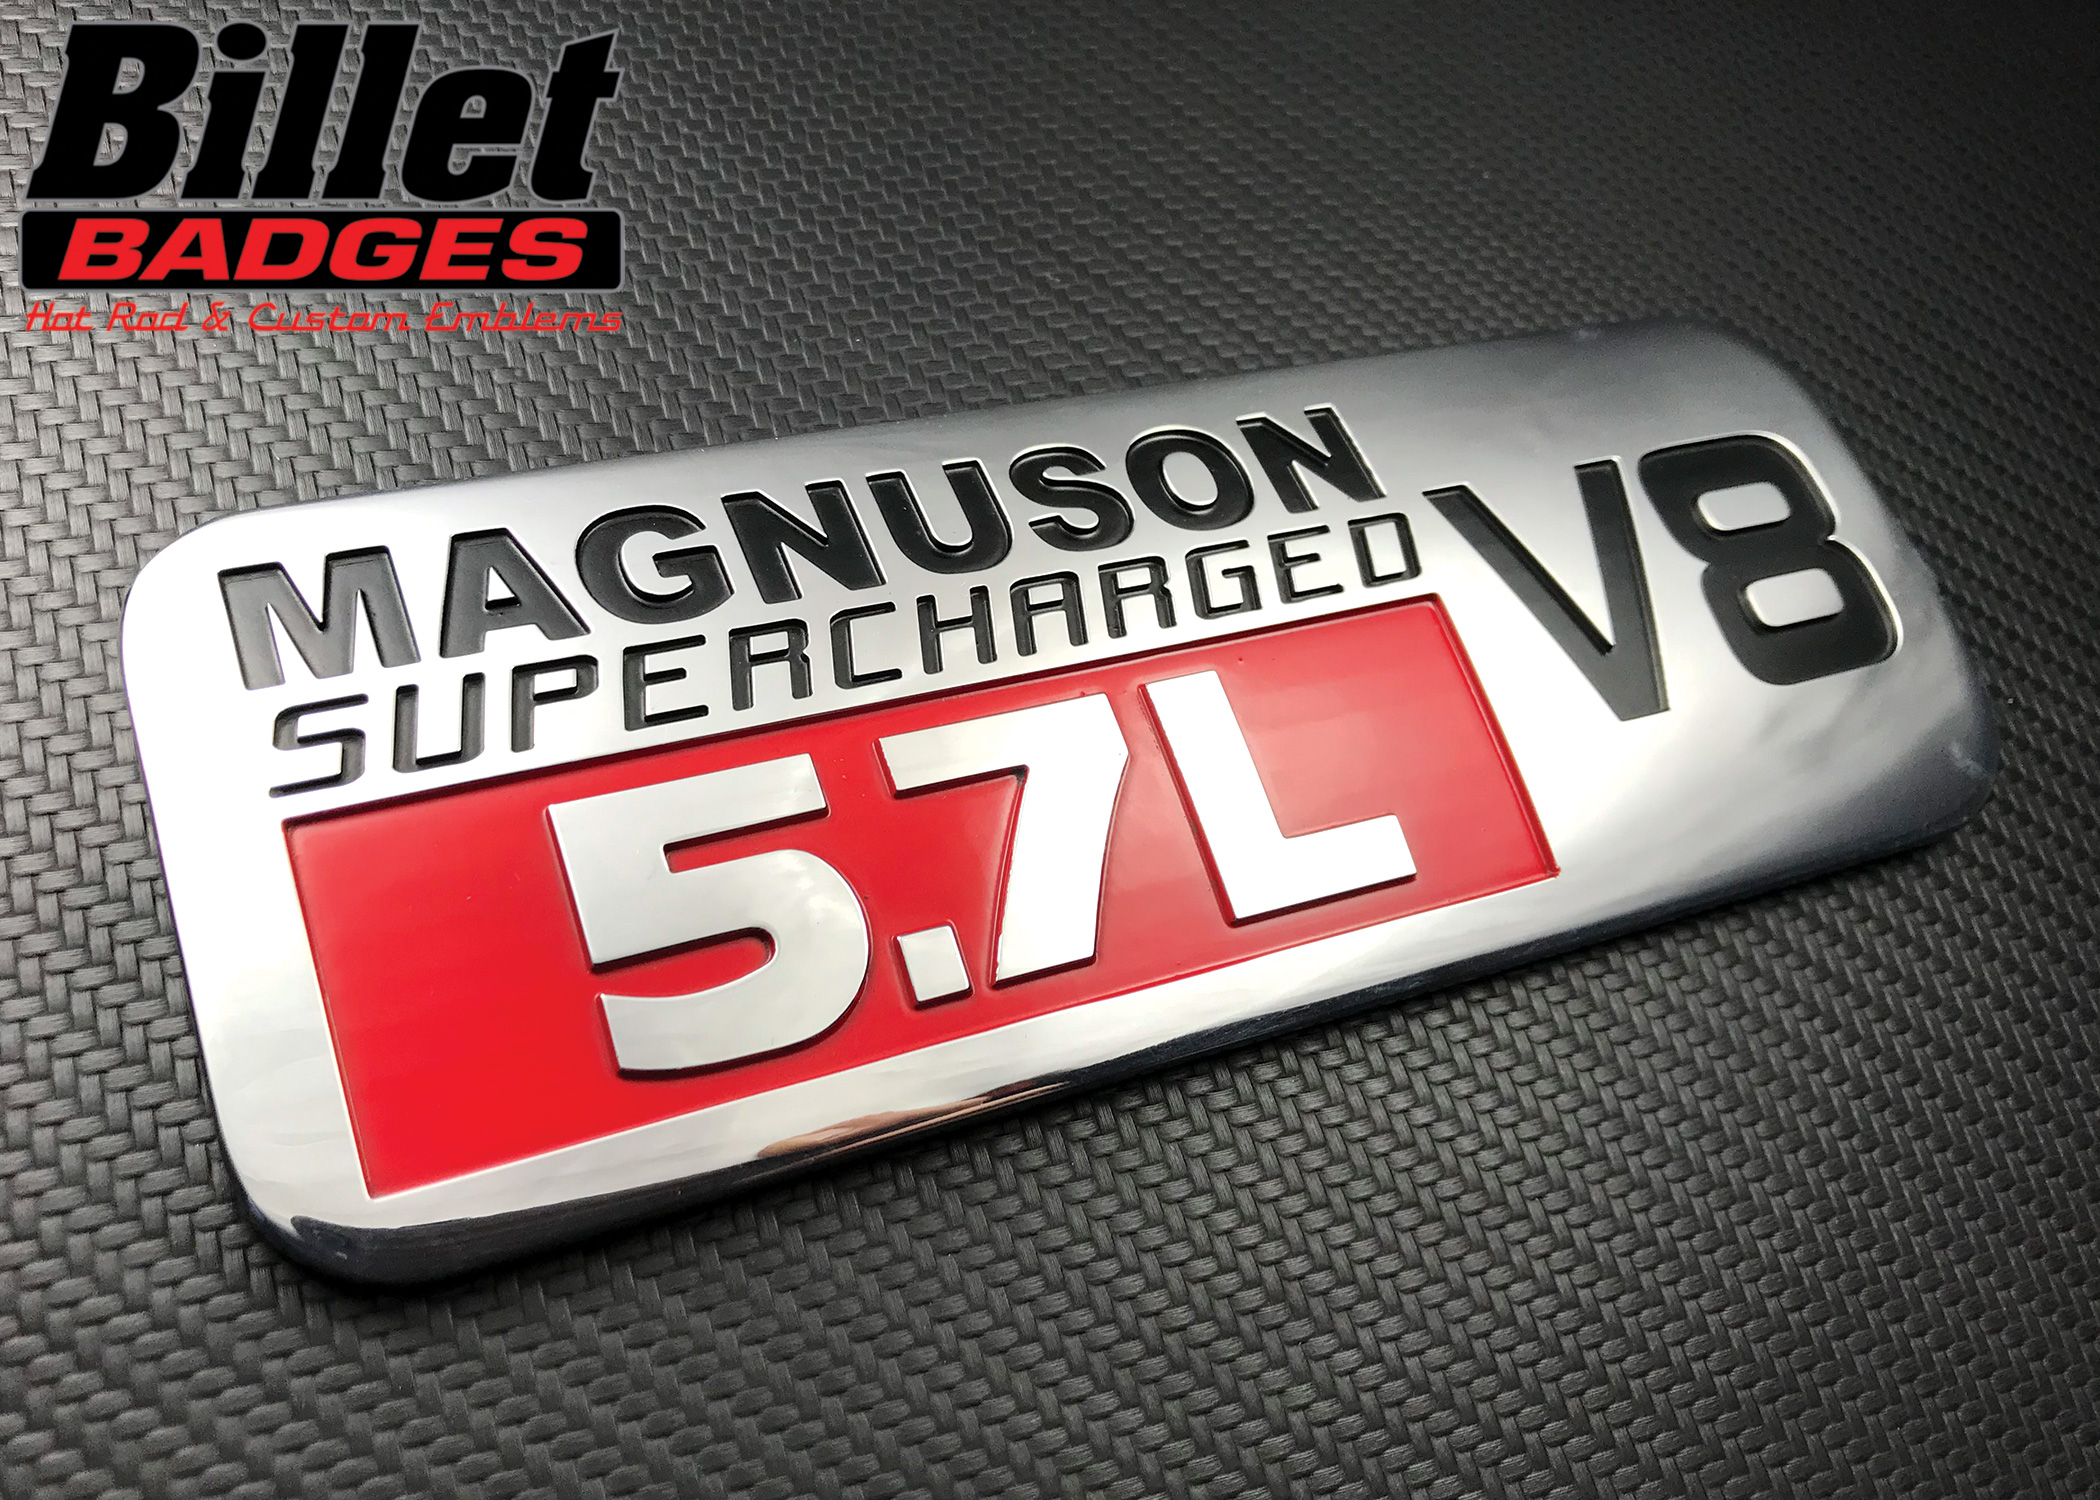 Magnuson Supercharged V8